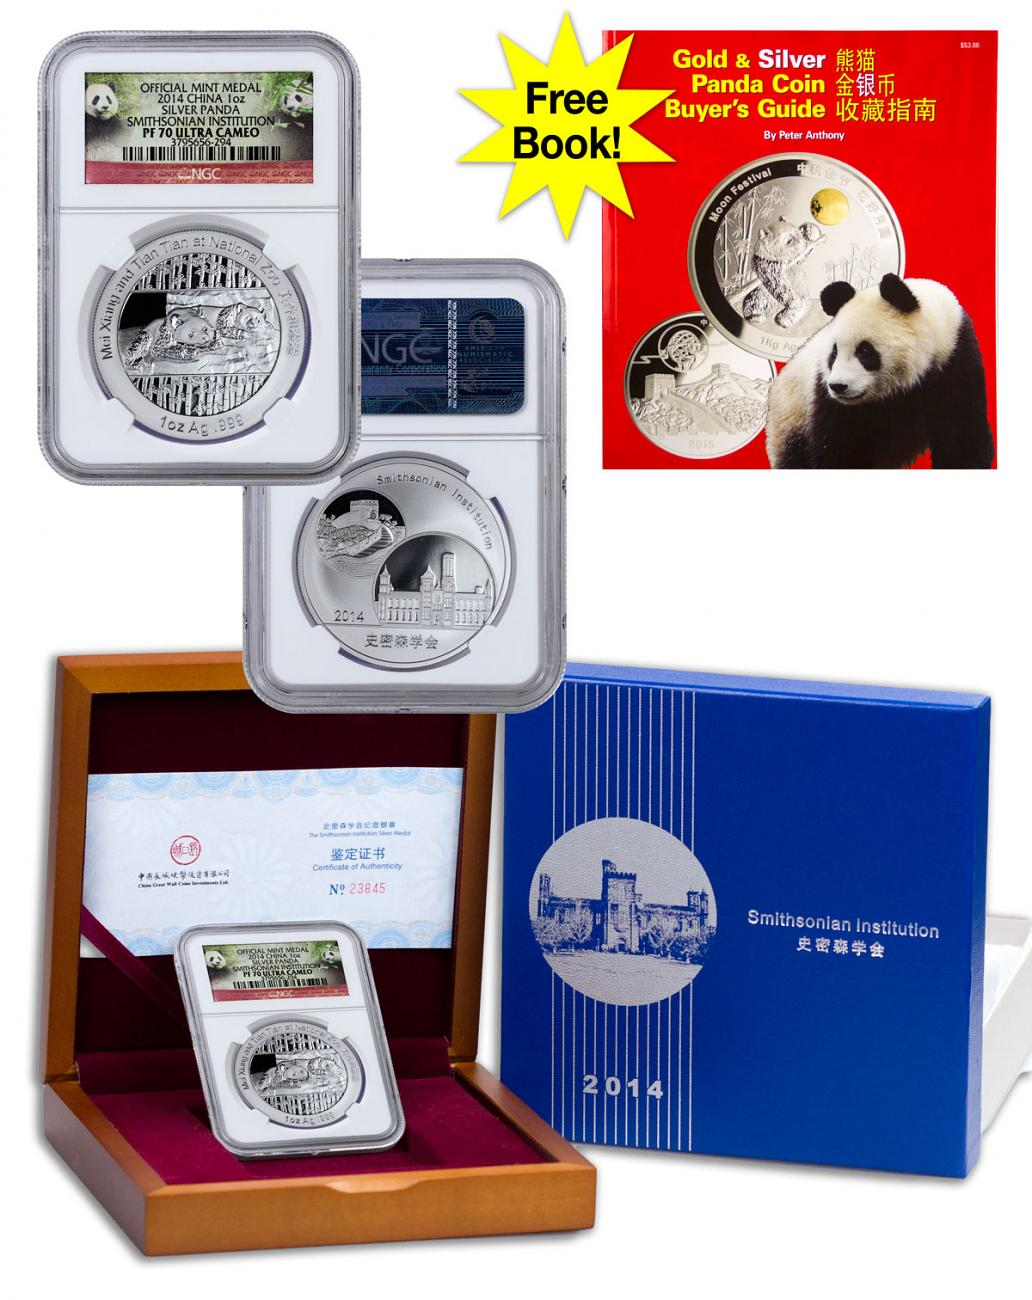 2014 China Mei Xiang and Tian Tian Smithsonian Institution Official Mint Medal 1 oz Silver Proof Medal NGC PF70 UC (Panda Label)